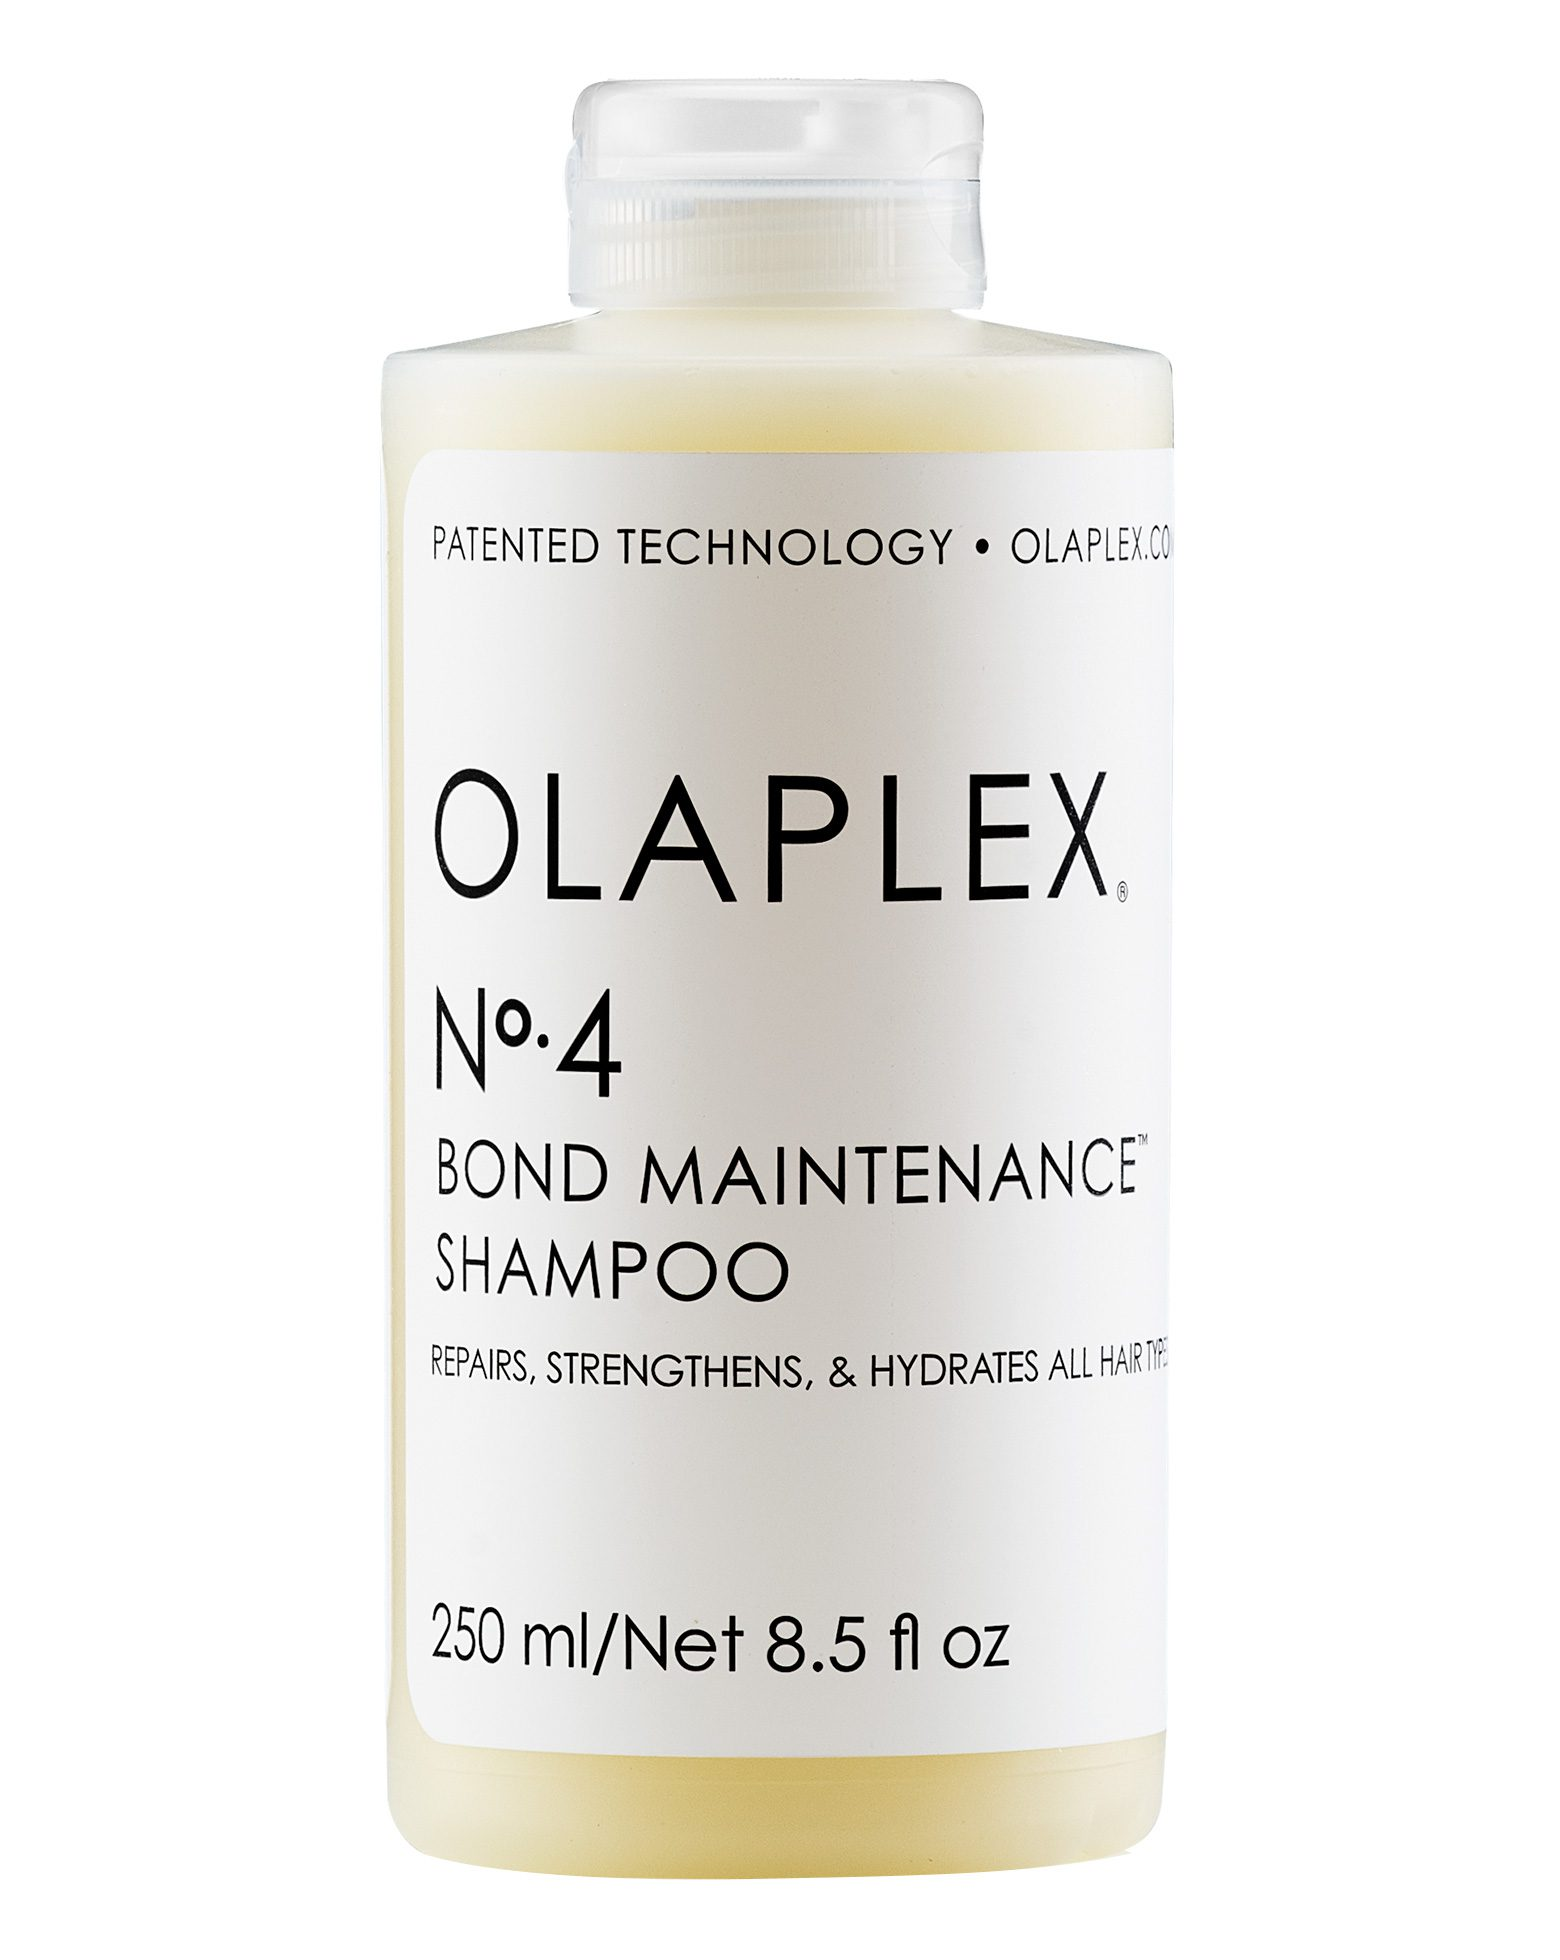 ola002_no4bondmaintenanceshampoo_1560x1960-tihy6